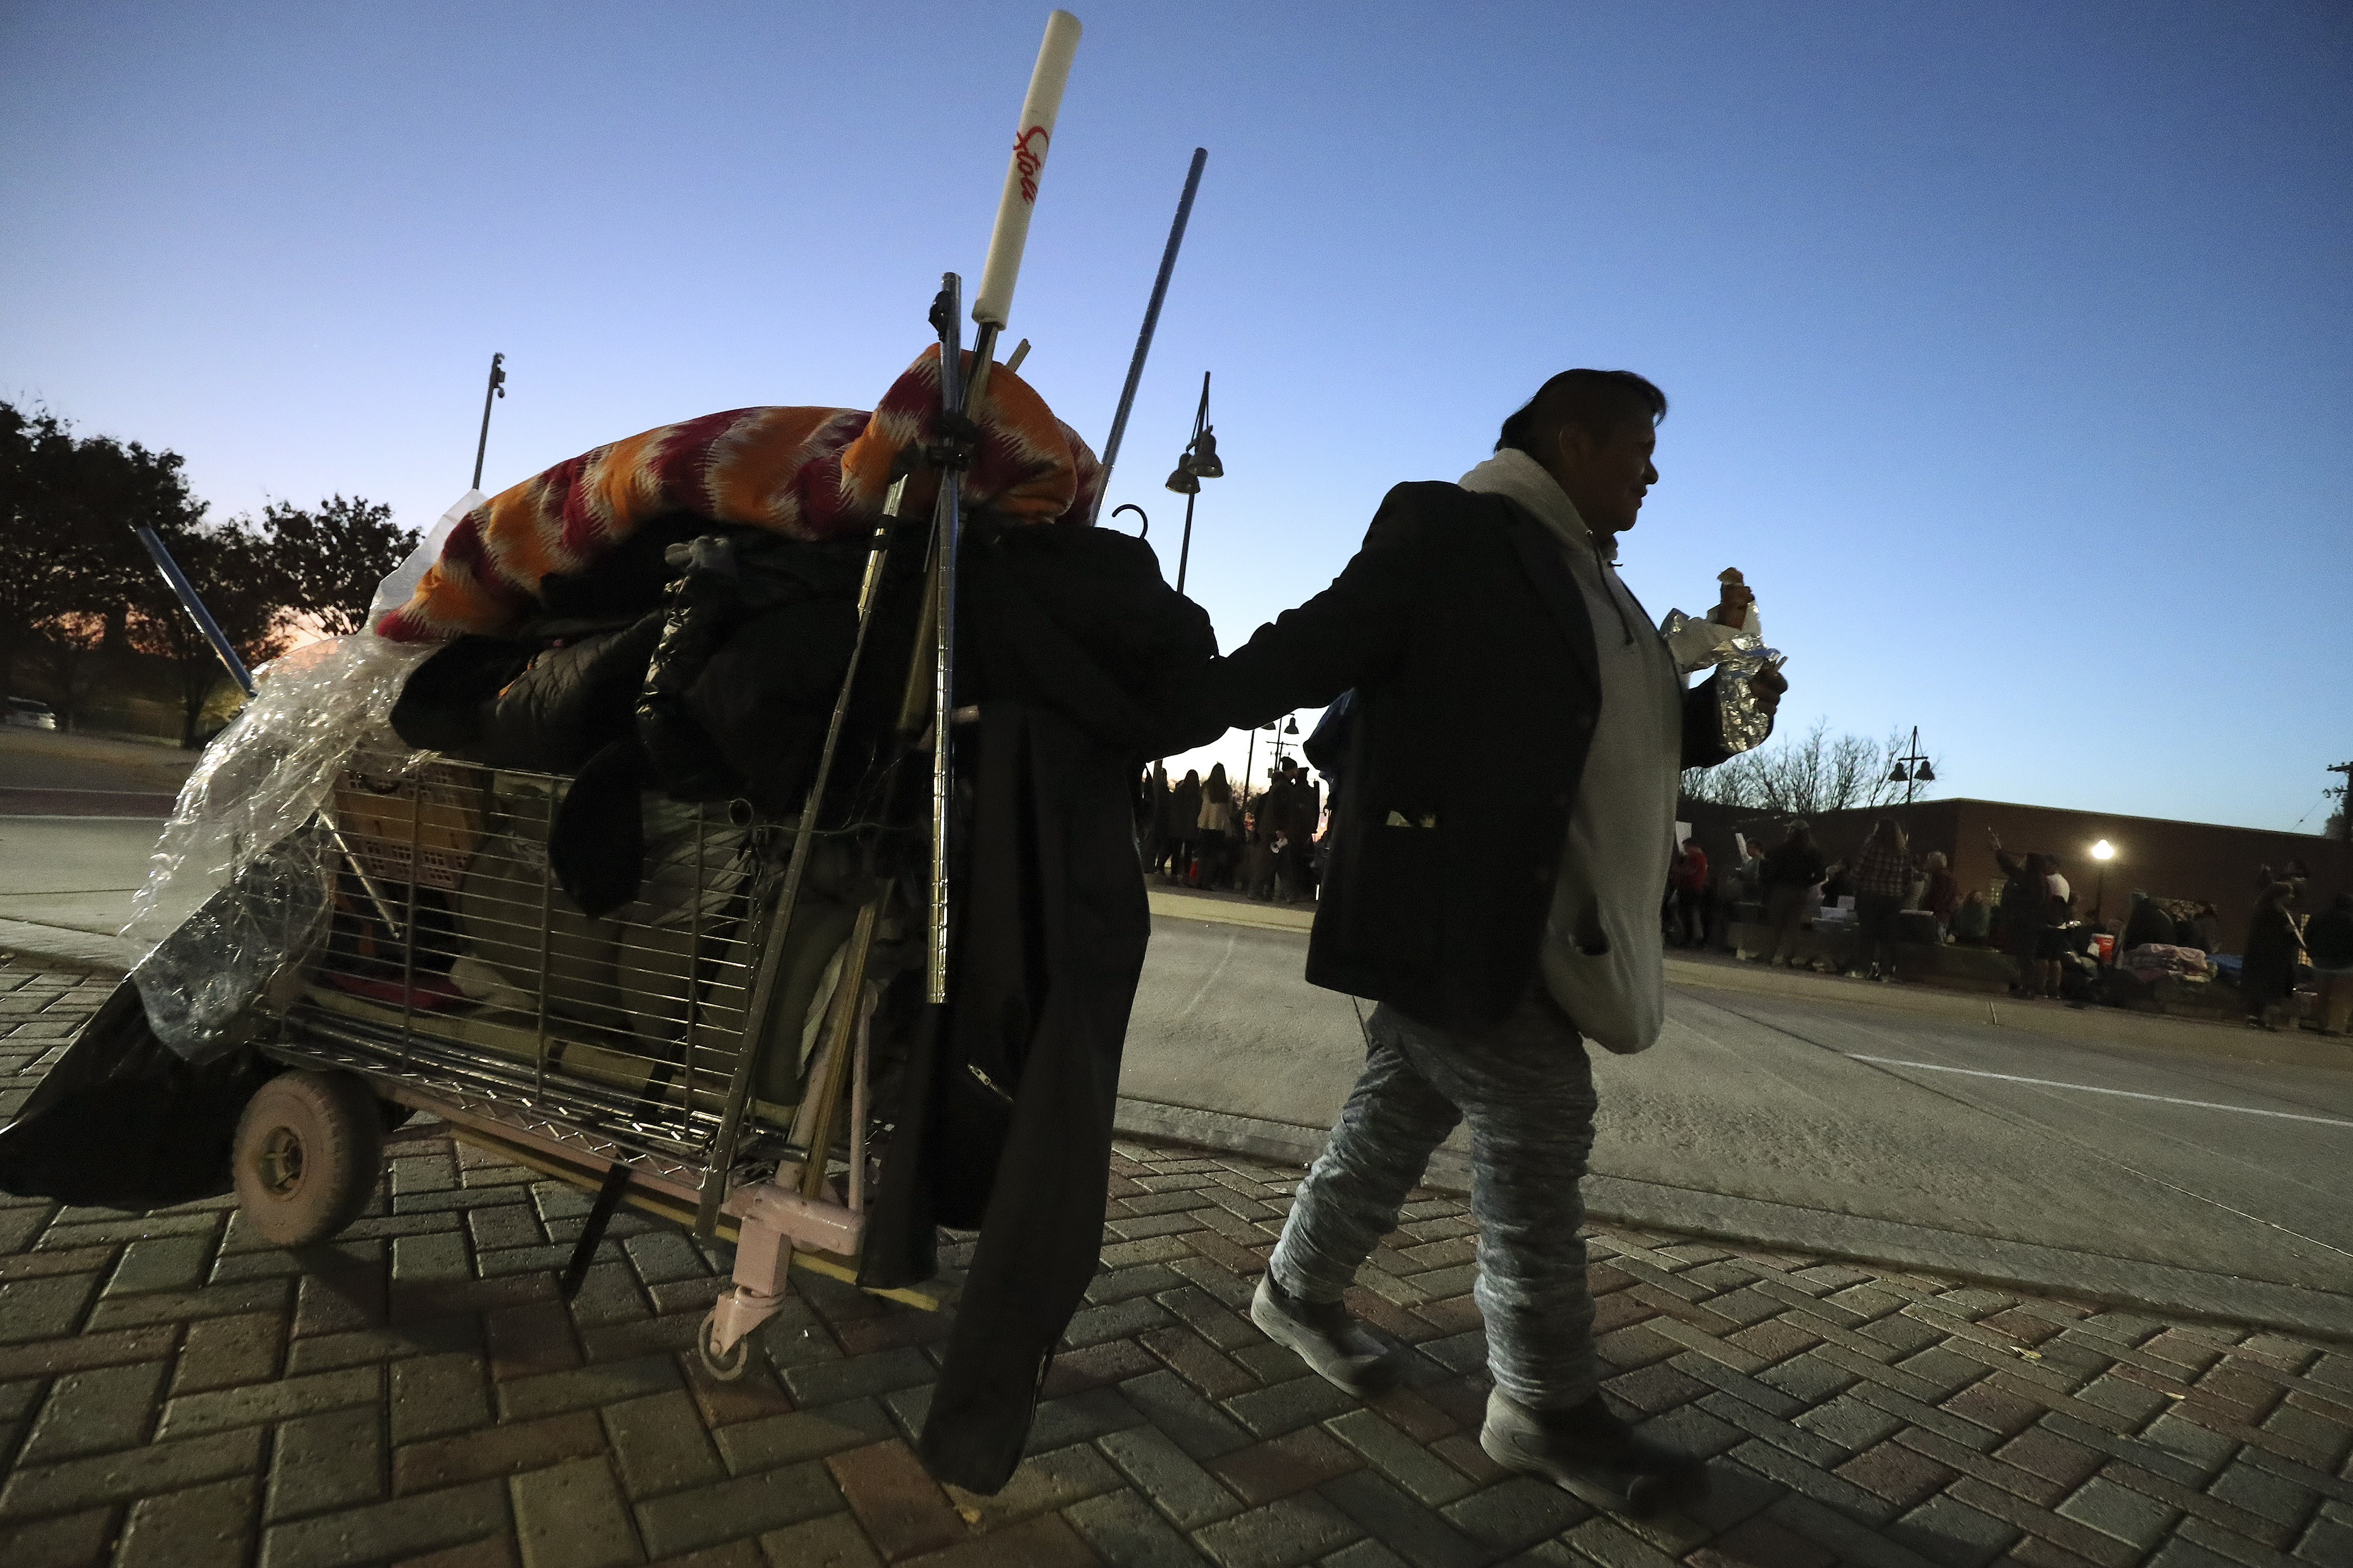 Terry Manyhides, who is homeless, pulls her possessions as protesters hold a rallyin Salt Lake City on Thursday, Nov. 7, 2019, to keep the Road Home open. The shelter is scheduled to close at the end of the month as thelast of three new homeless resource centers opens.